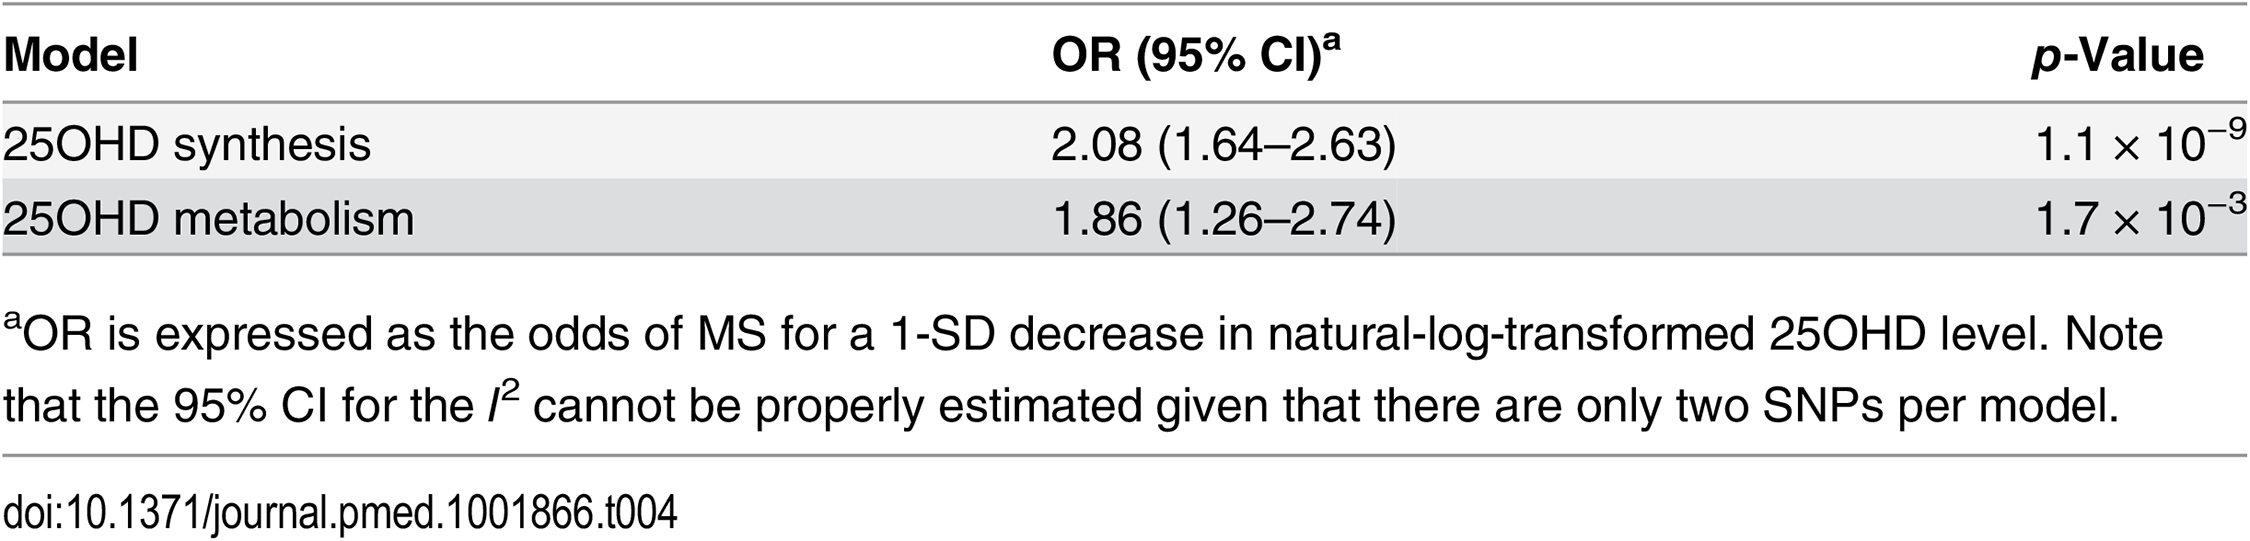 Mendelian randomization estimate of the association of decreased 25OHD with the risk of multiple sclerosis stratified by SNPs near genes involved in 25OHD synthesis versus metabolism using a fixed-effects model.